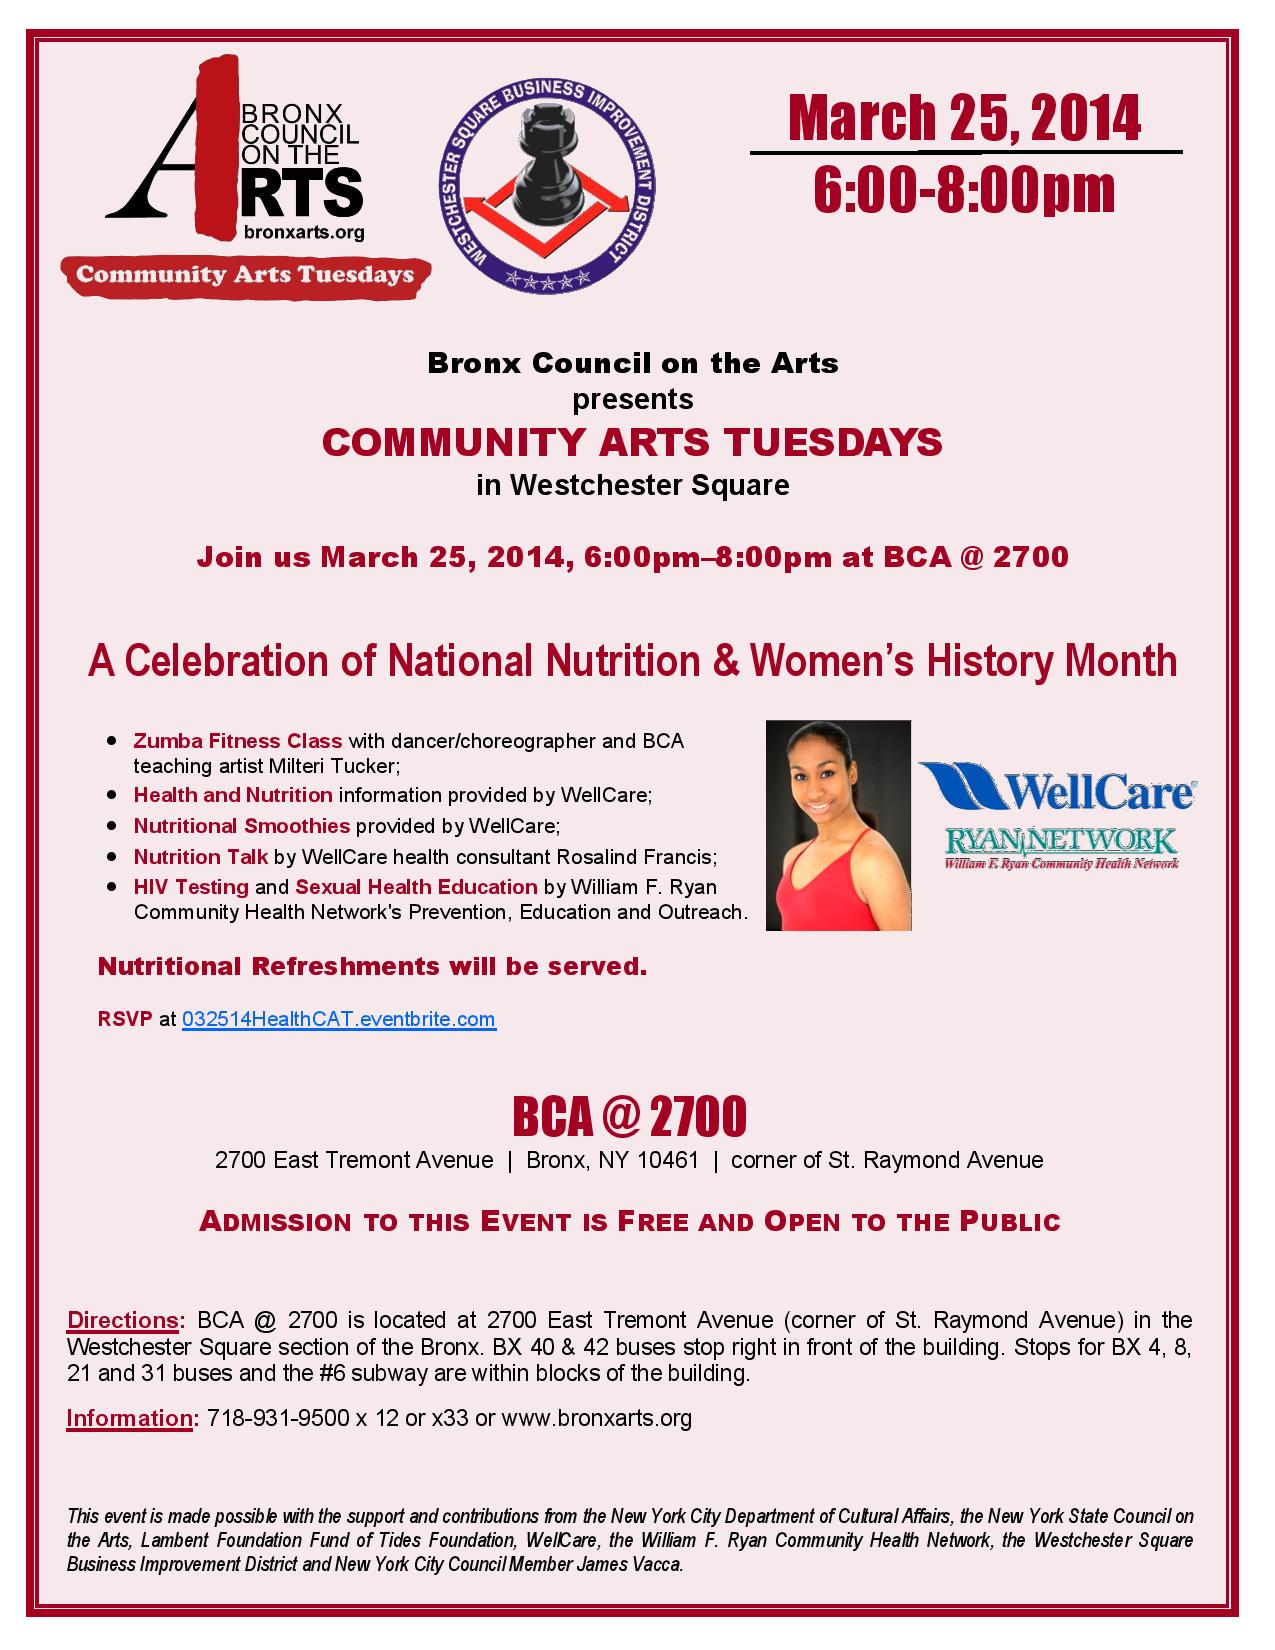 Community Arts Tuesday in Westchester Square